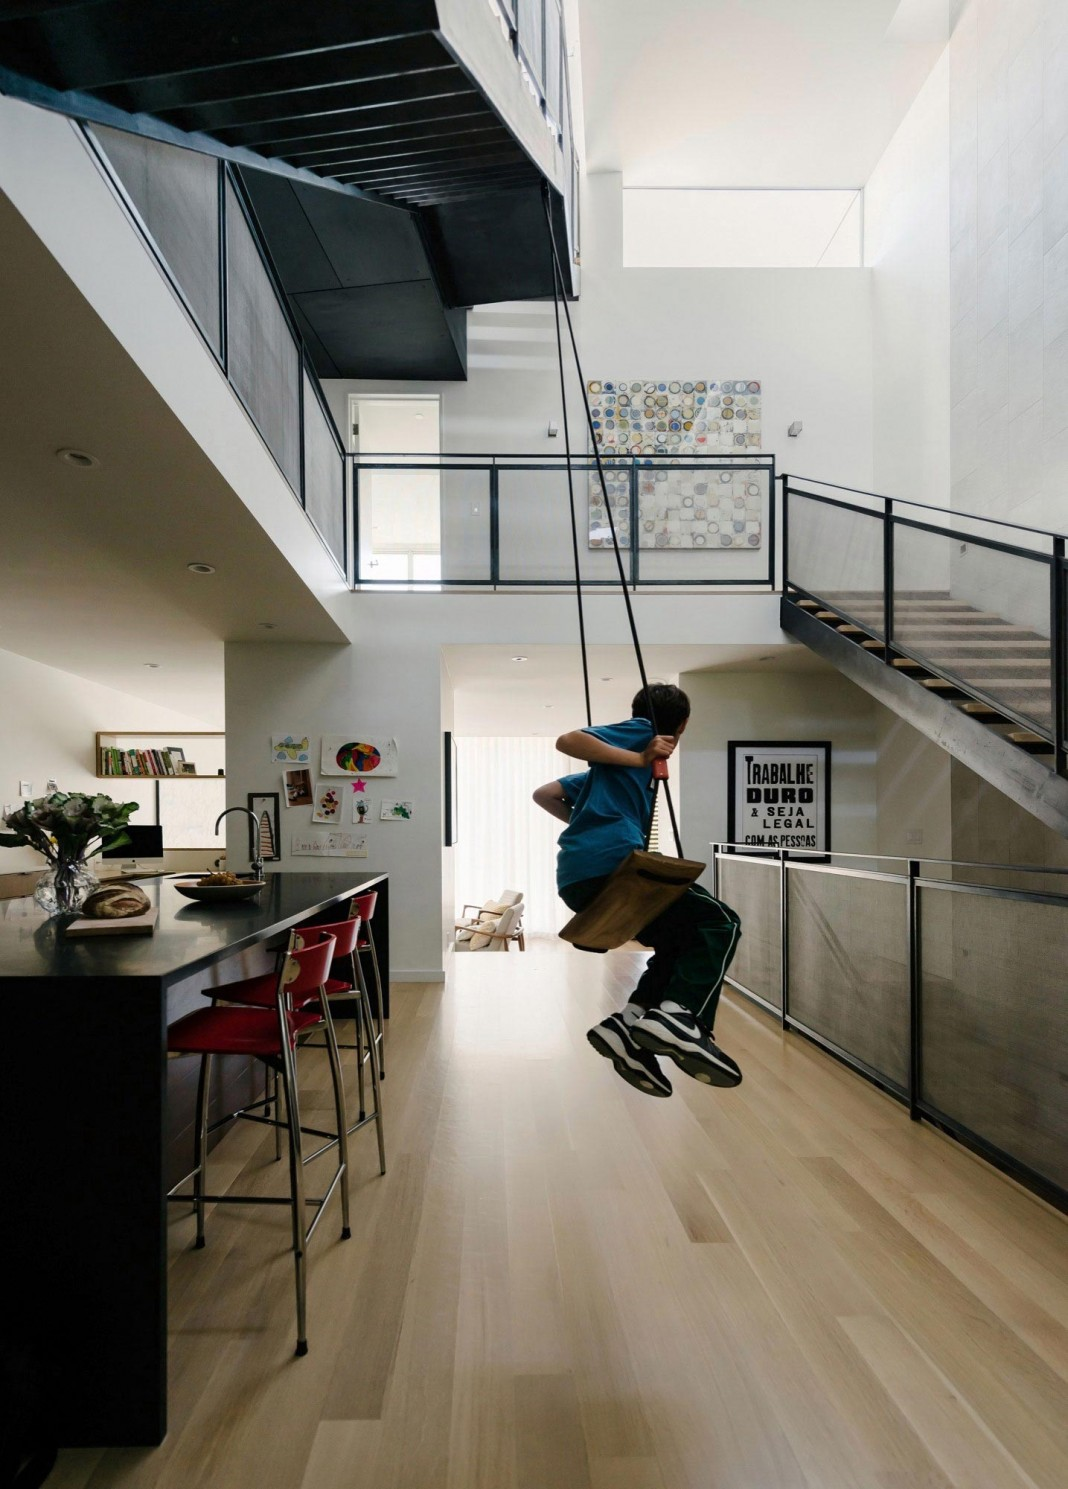 Fitty Wun Playful Contemproary Residence in San Francisco by Feldman Architecture